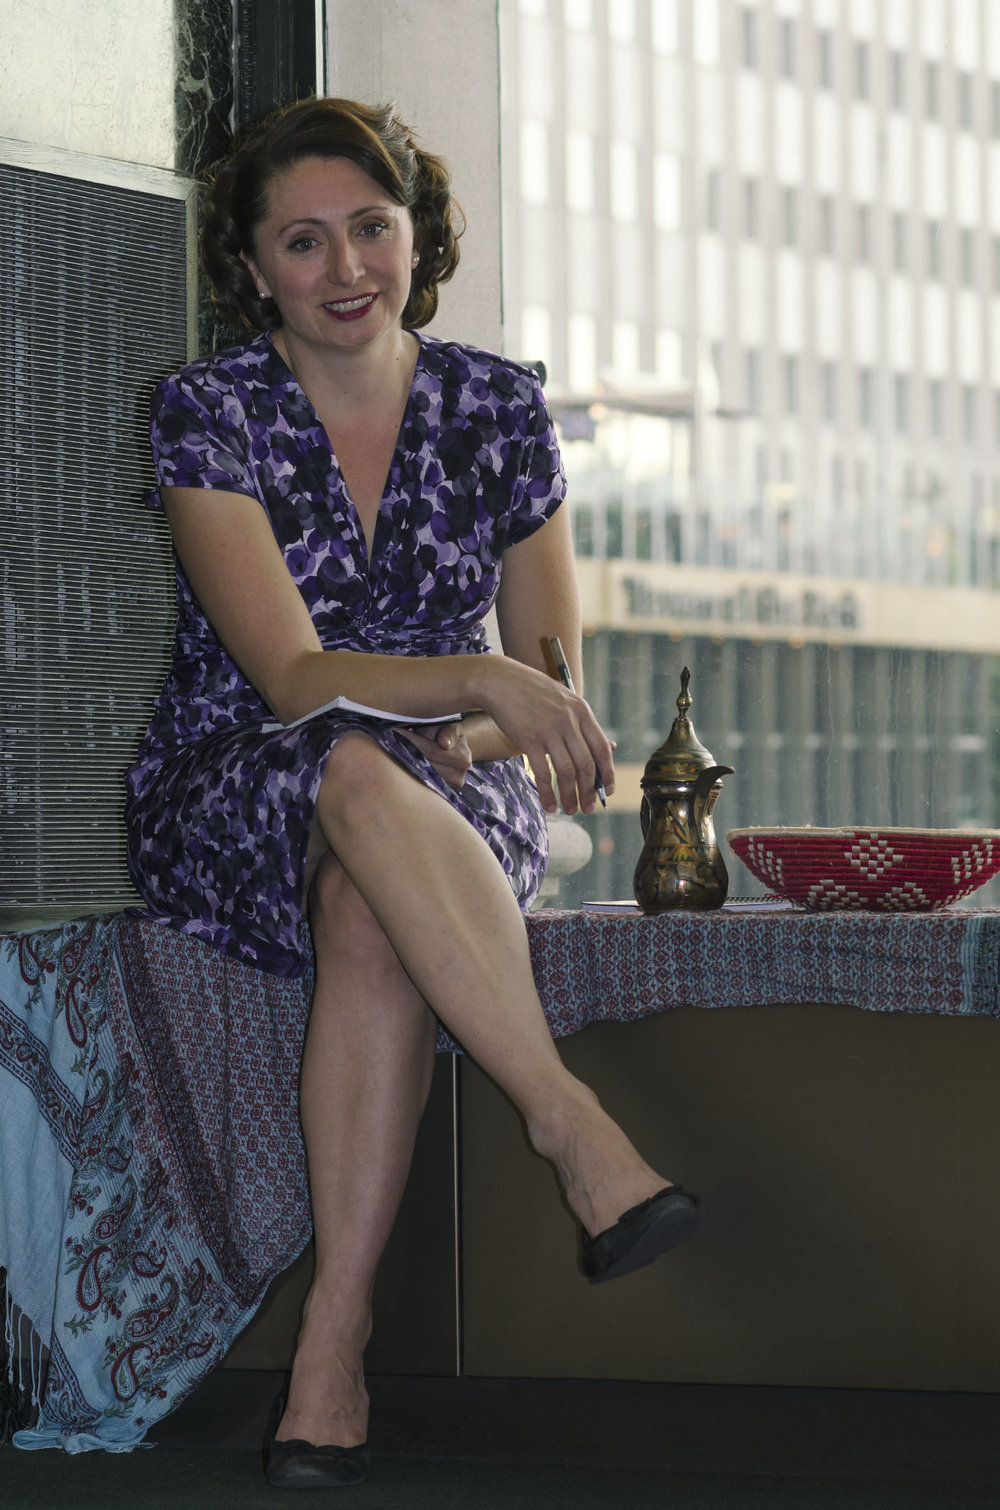 Author Photo Taken By Victoria Shapow at the Chicago Cultural Center